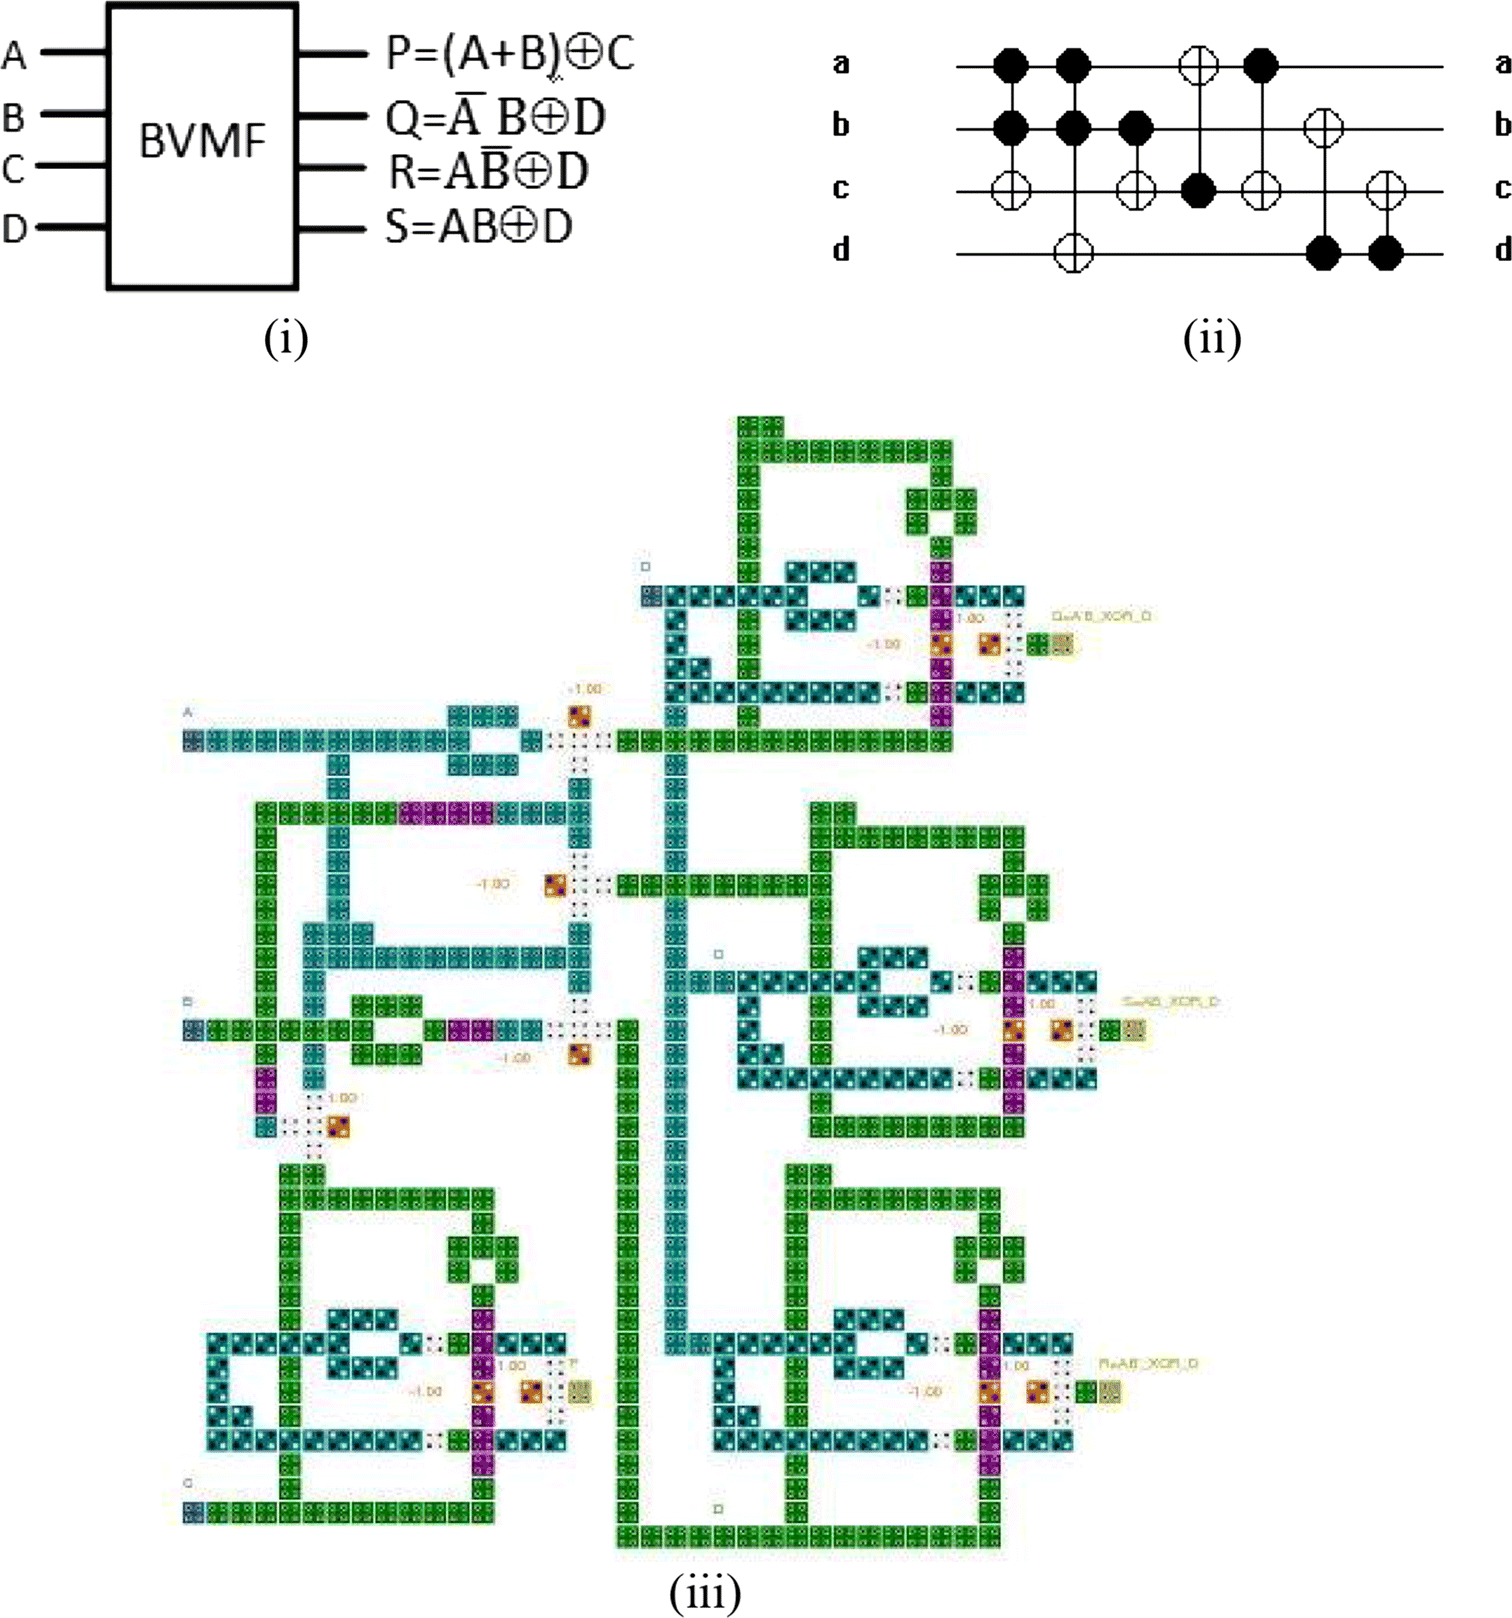 Toffoli Netlist And Qca Implementations For Existing Four Variable Logic Gates Circuit 7 10 From 56 Votes 8 Open Image In New Window